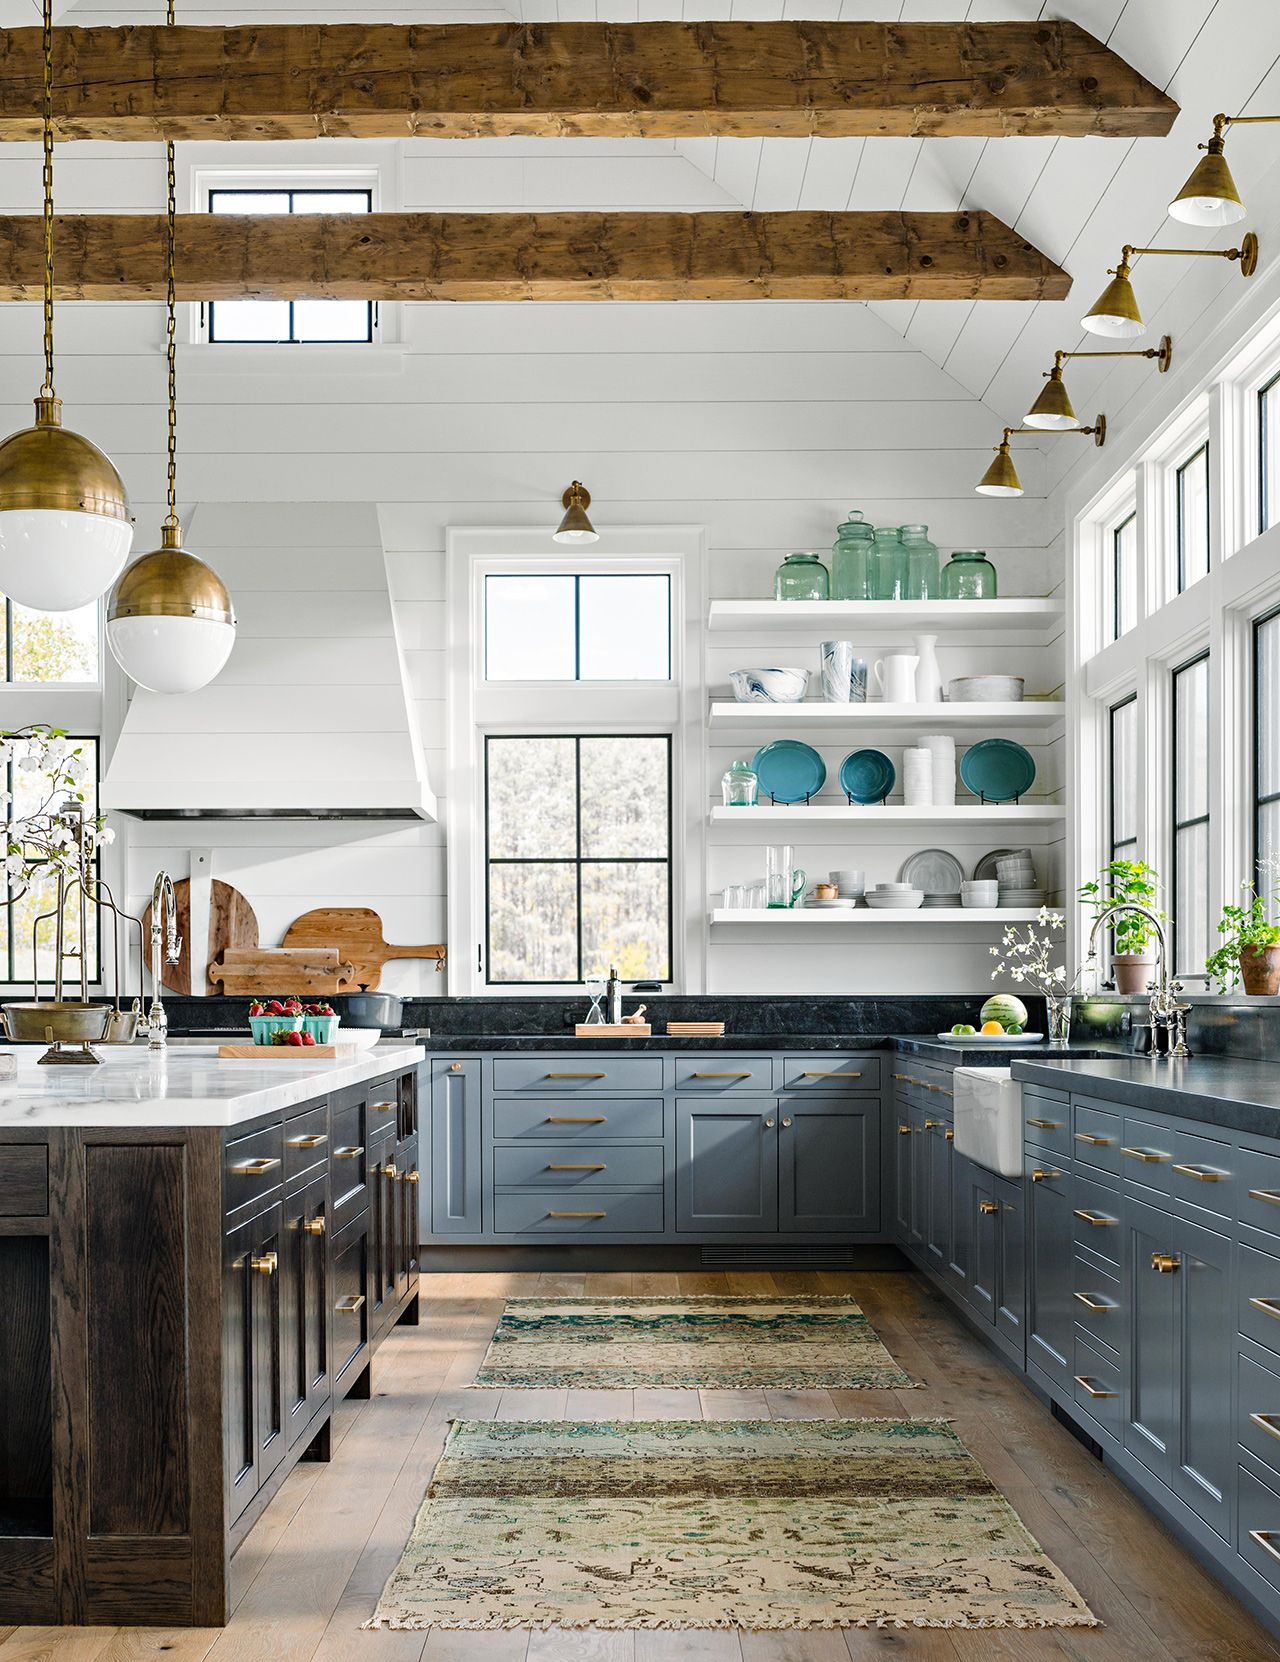 25 Winning Kitchen Color Schemes For A Look You Ll Love Forever Kitchen Colour Schemes Kitchen Cabinet Colors Farmhouse Kitchen Colors